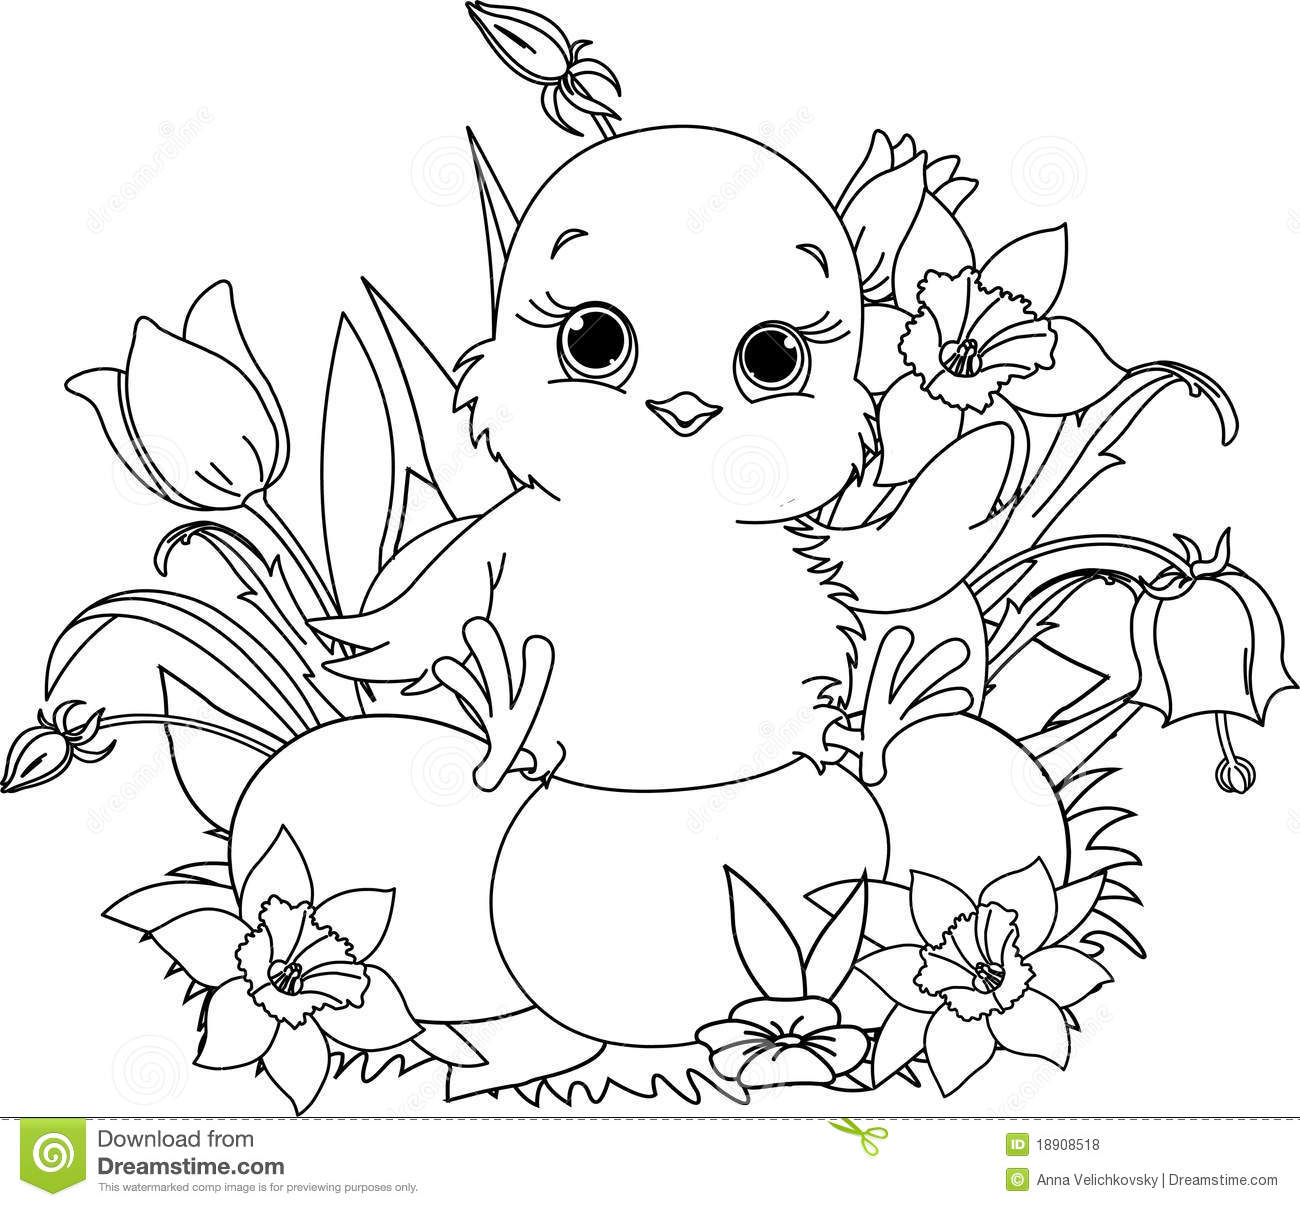 Happy Easter Chick Coloring Page Stock Vector Illustration Of Best - Free Printable Easter Baby Chick Coloring Pages